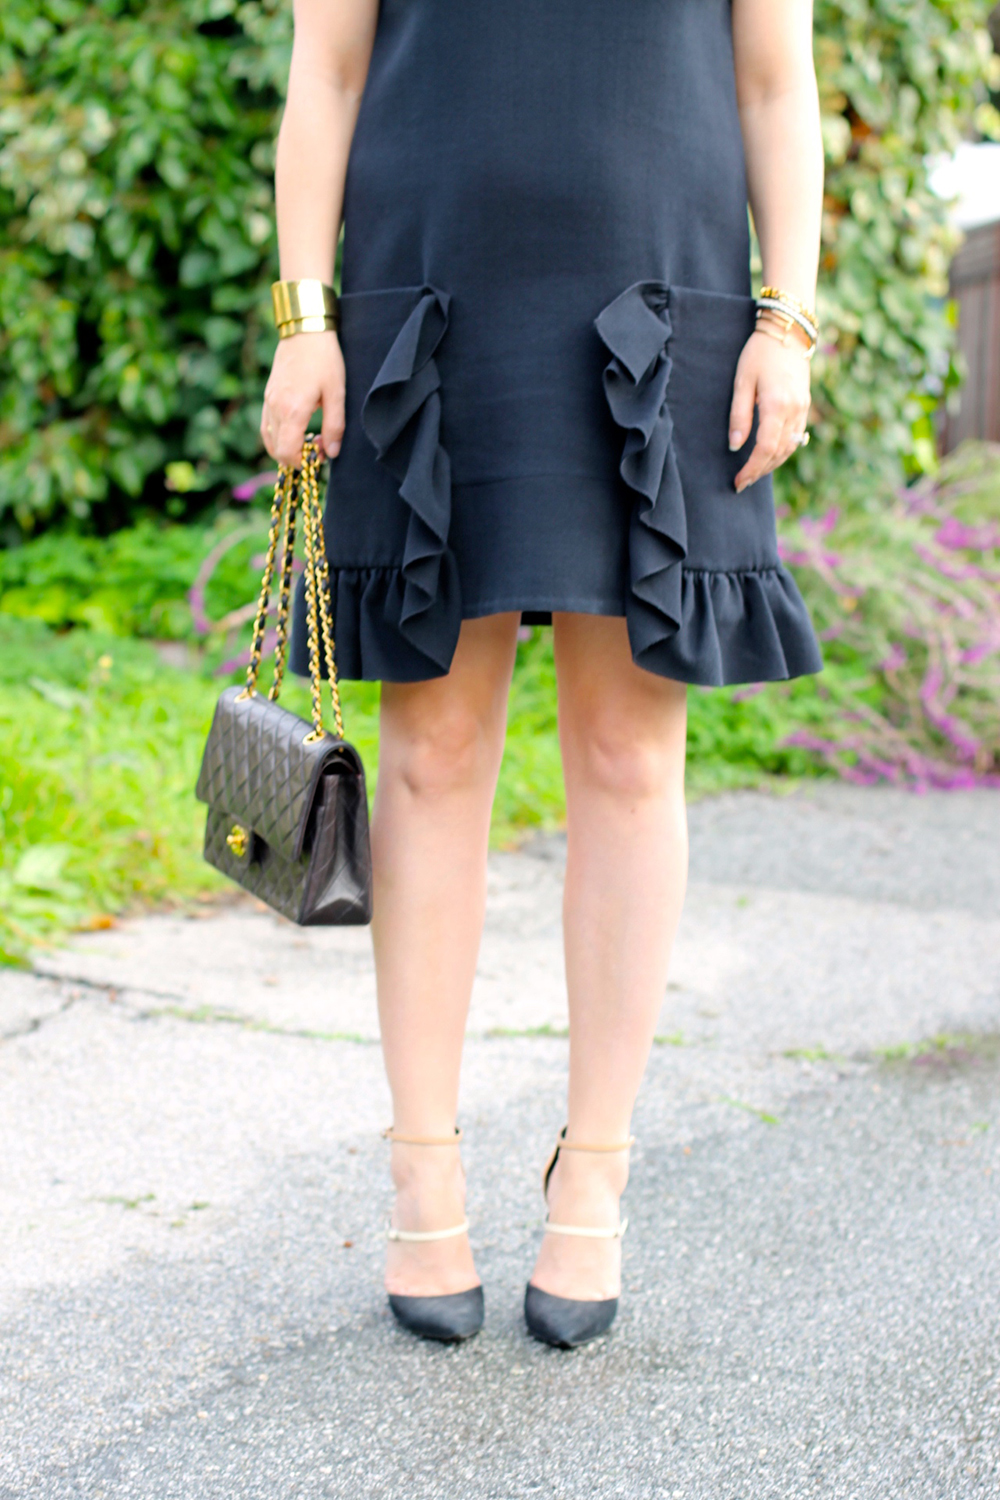 lbd-little-black-dress-ruffle-pockets-marni-rent-the-runway-outfit-inspiration-holiday-style-guide-have-need-want-5